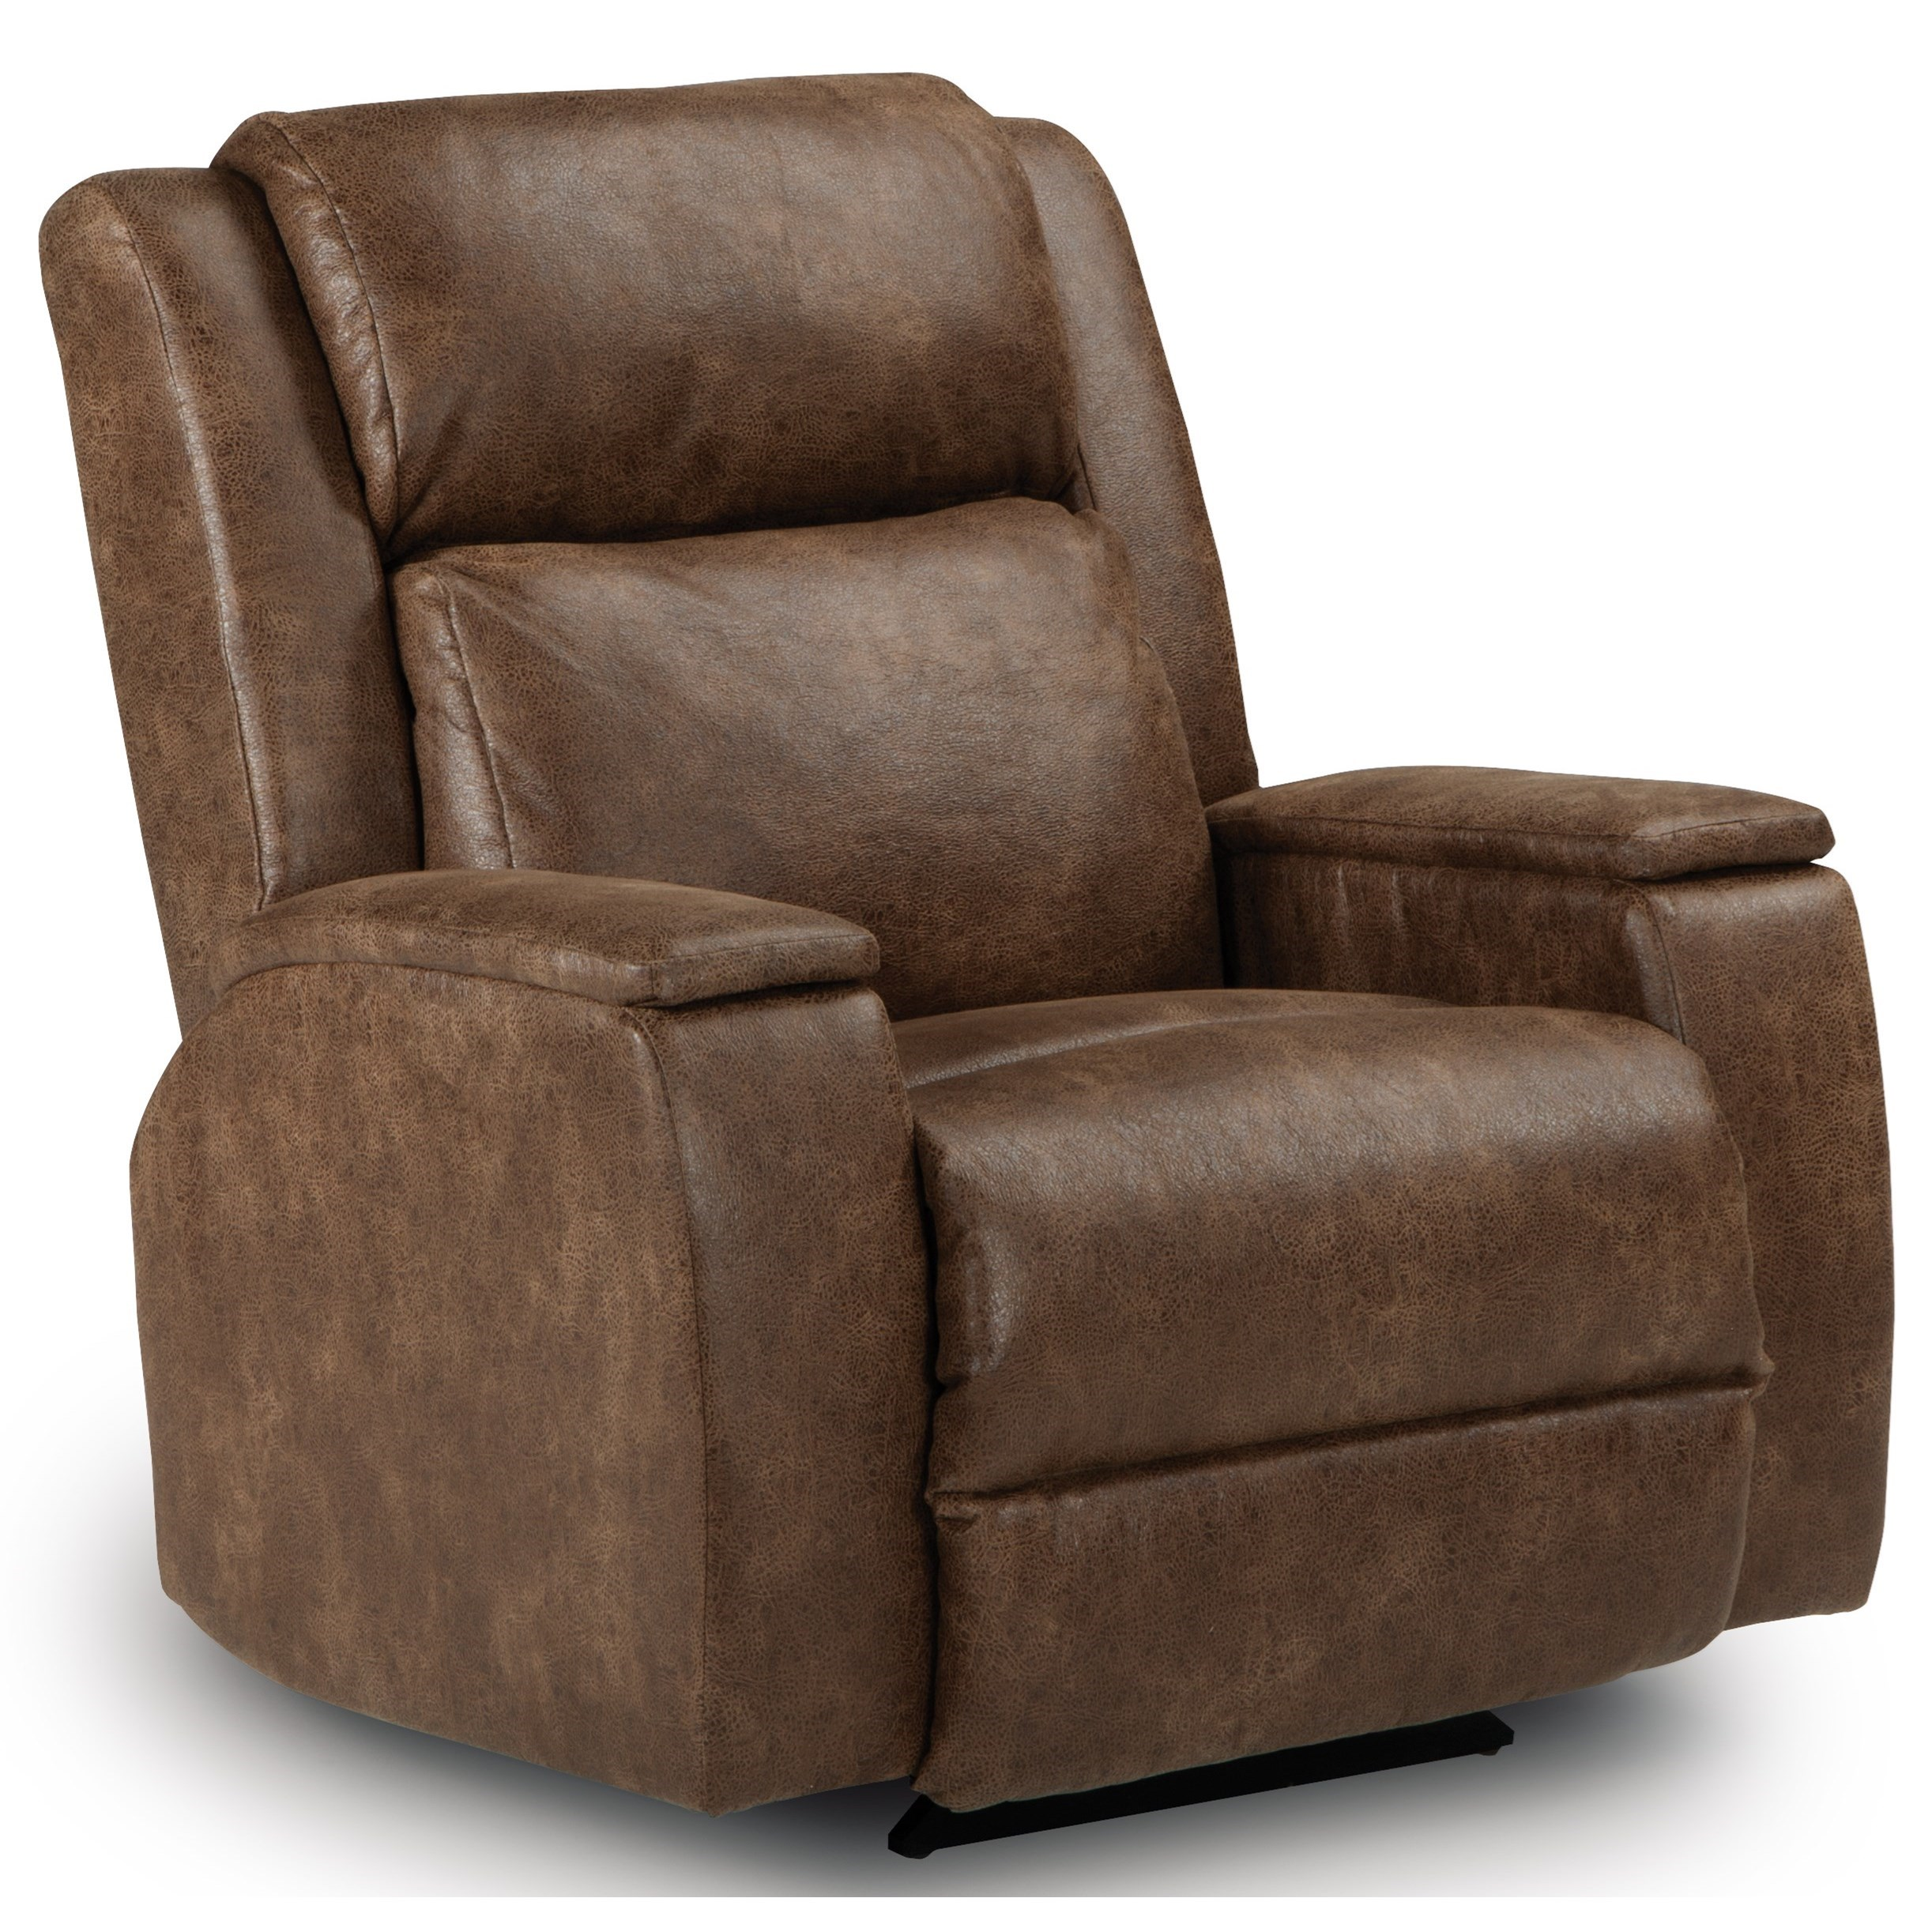 Best Home Furnishings Recliners - Medium Colton Power Lift Recliner w/ Pwr Headrest - Item Number: 7NZ41